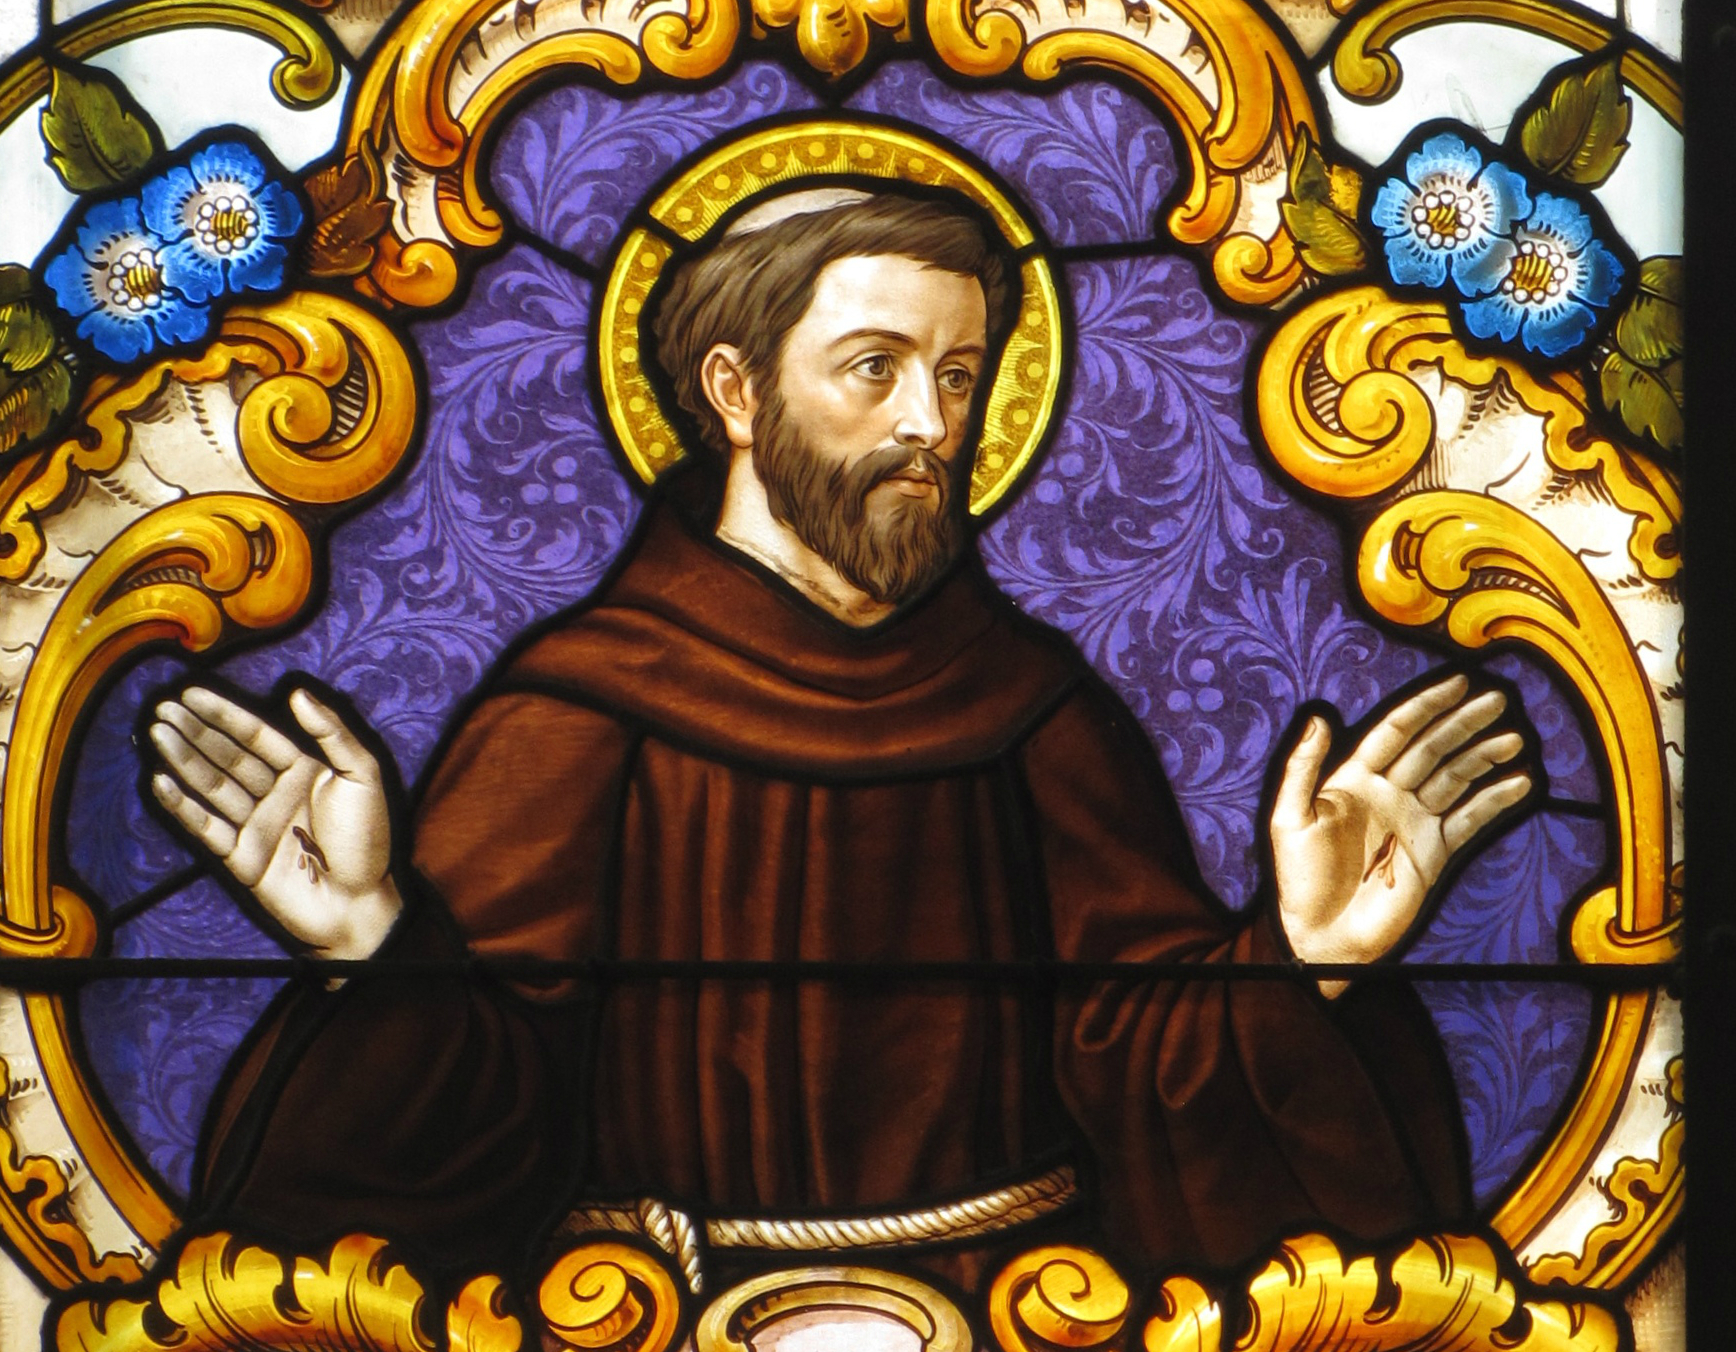 Saint Francis with the stigmata. Stained glass window in Kyjov